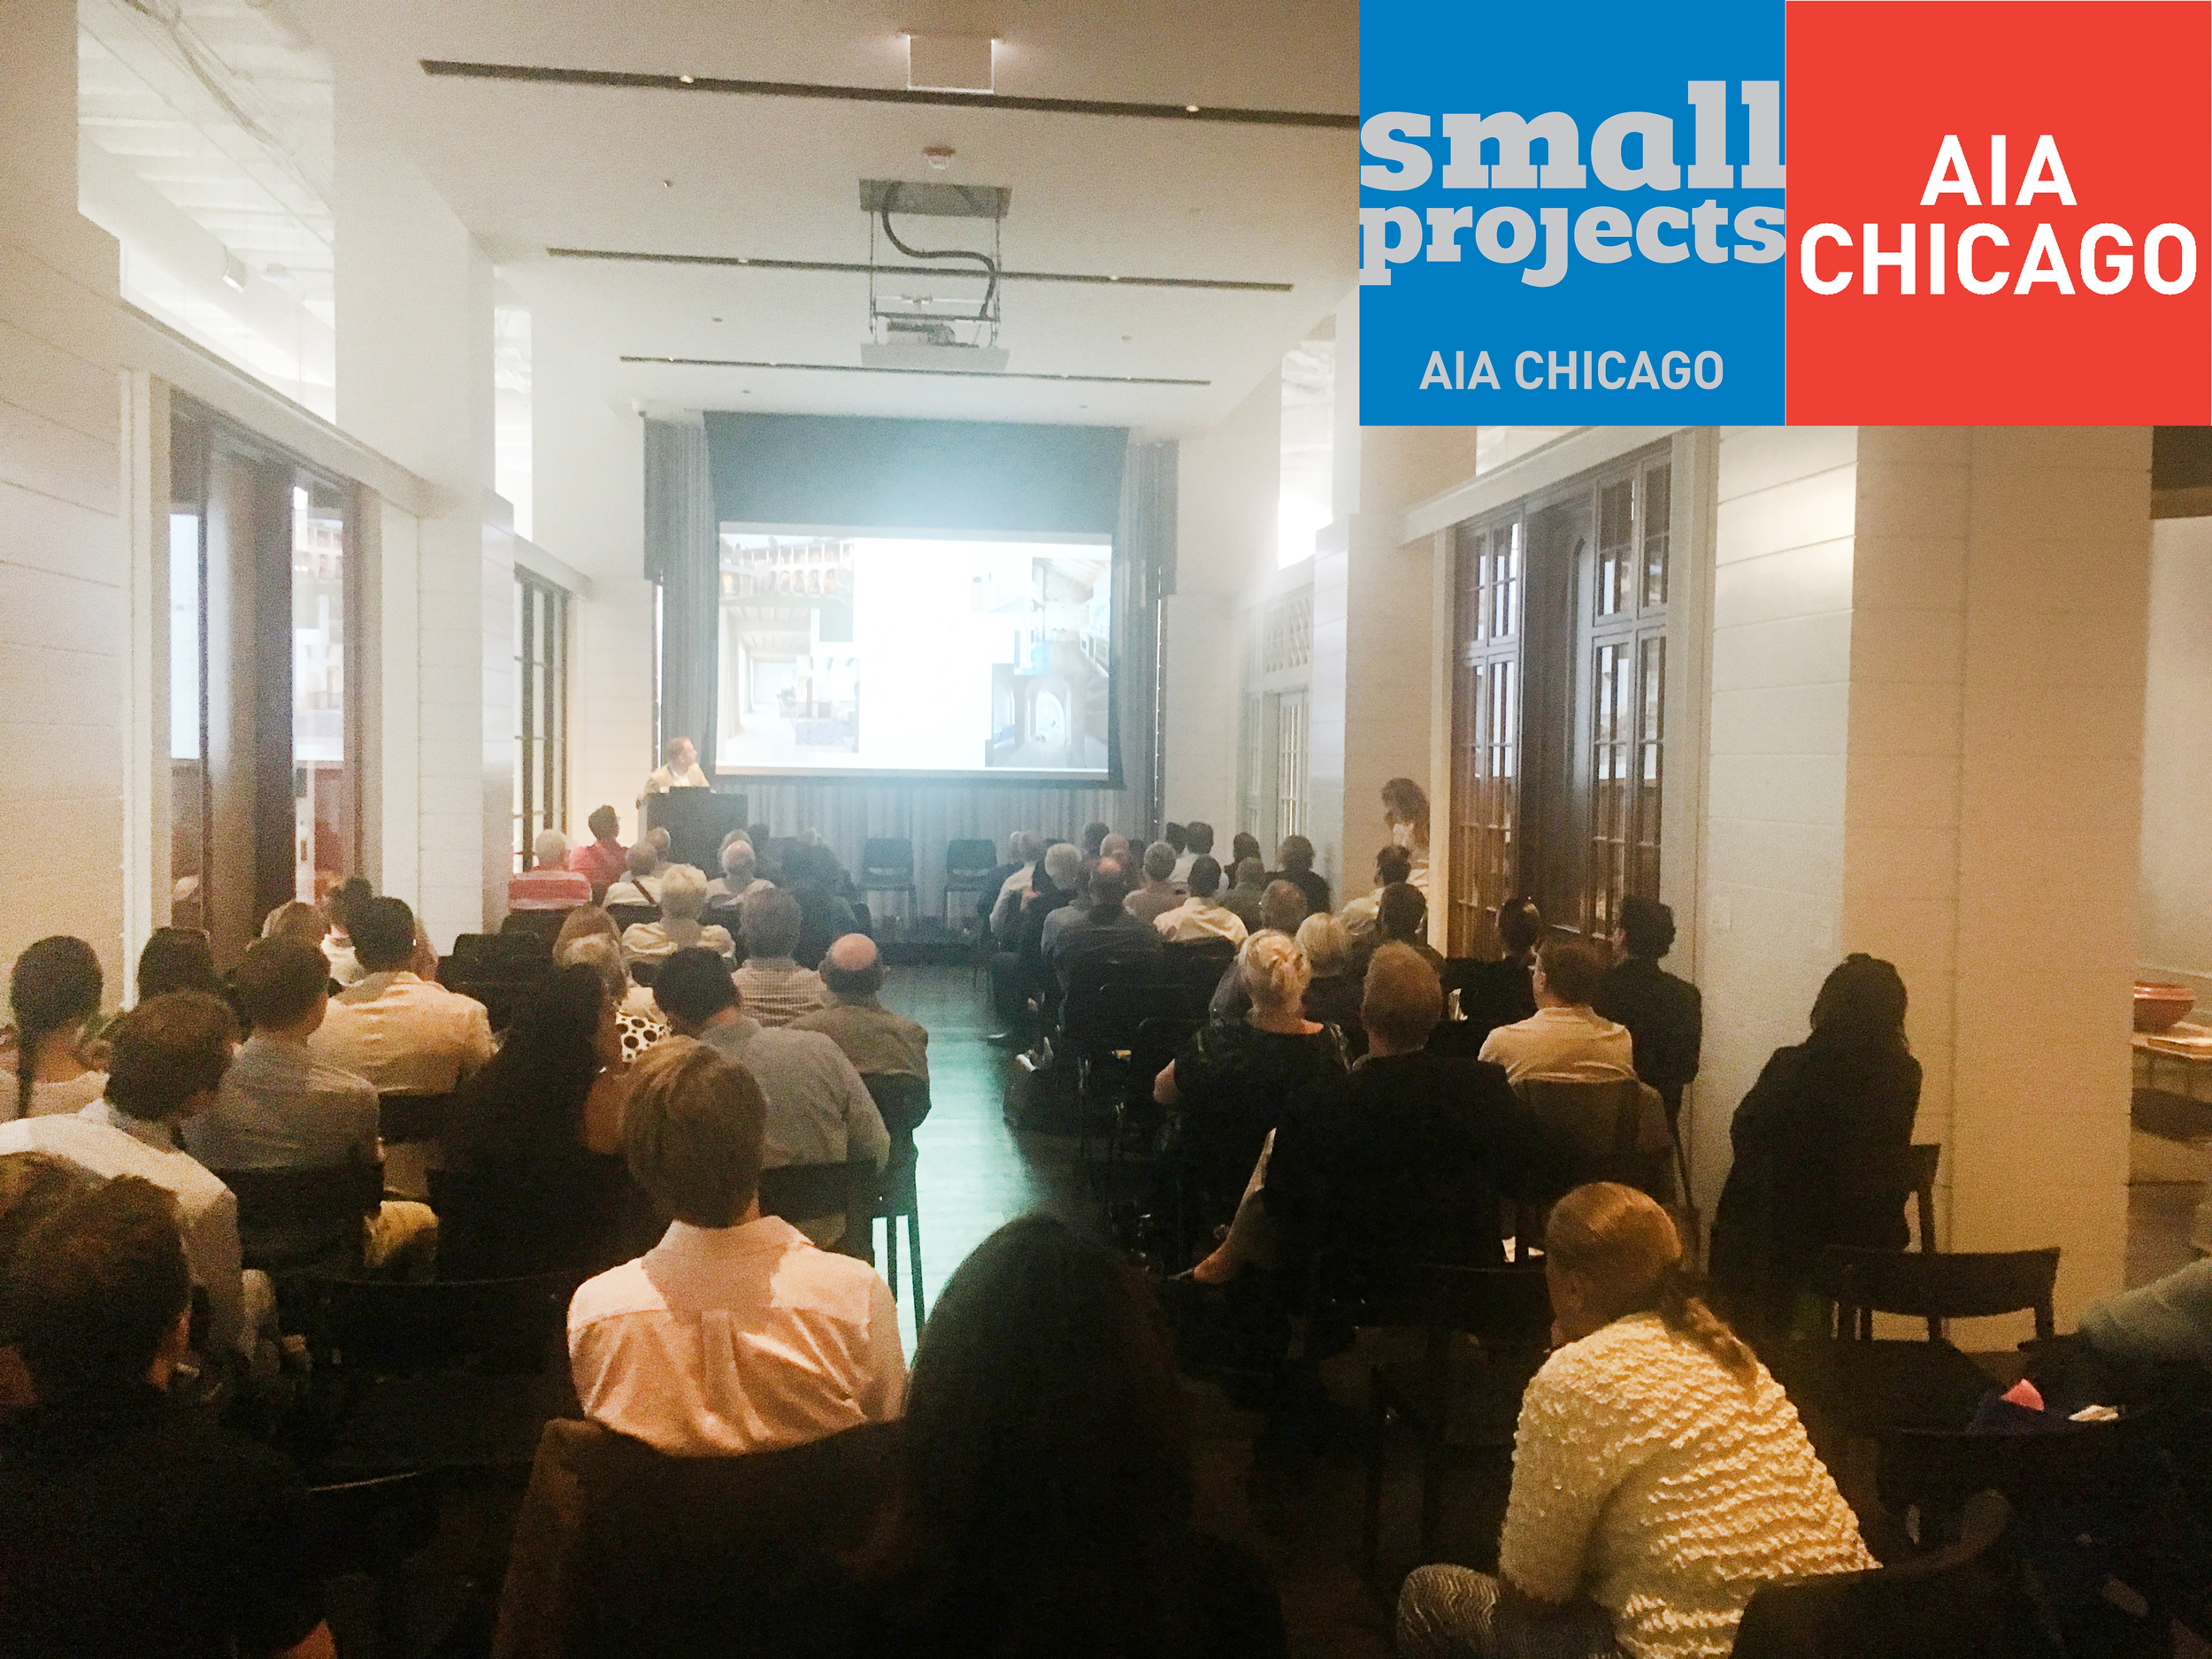 FIVE AWARD WINNING ARCHITECTS   Five architects from the  AIA Chicago Small Project Award s, including  Greg Howe , gave presentations on their award winning projects and the design process with the client. The evening was a resounding success with a great turnout.